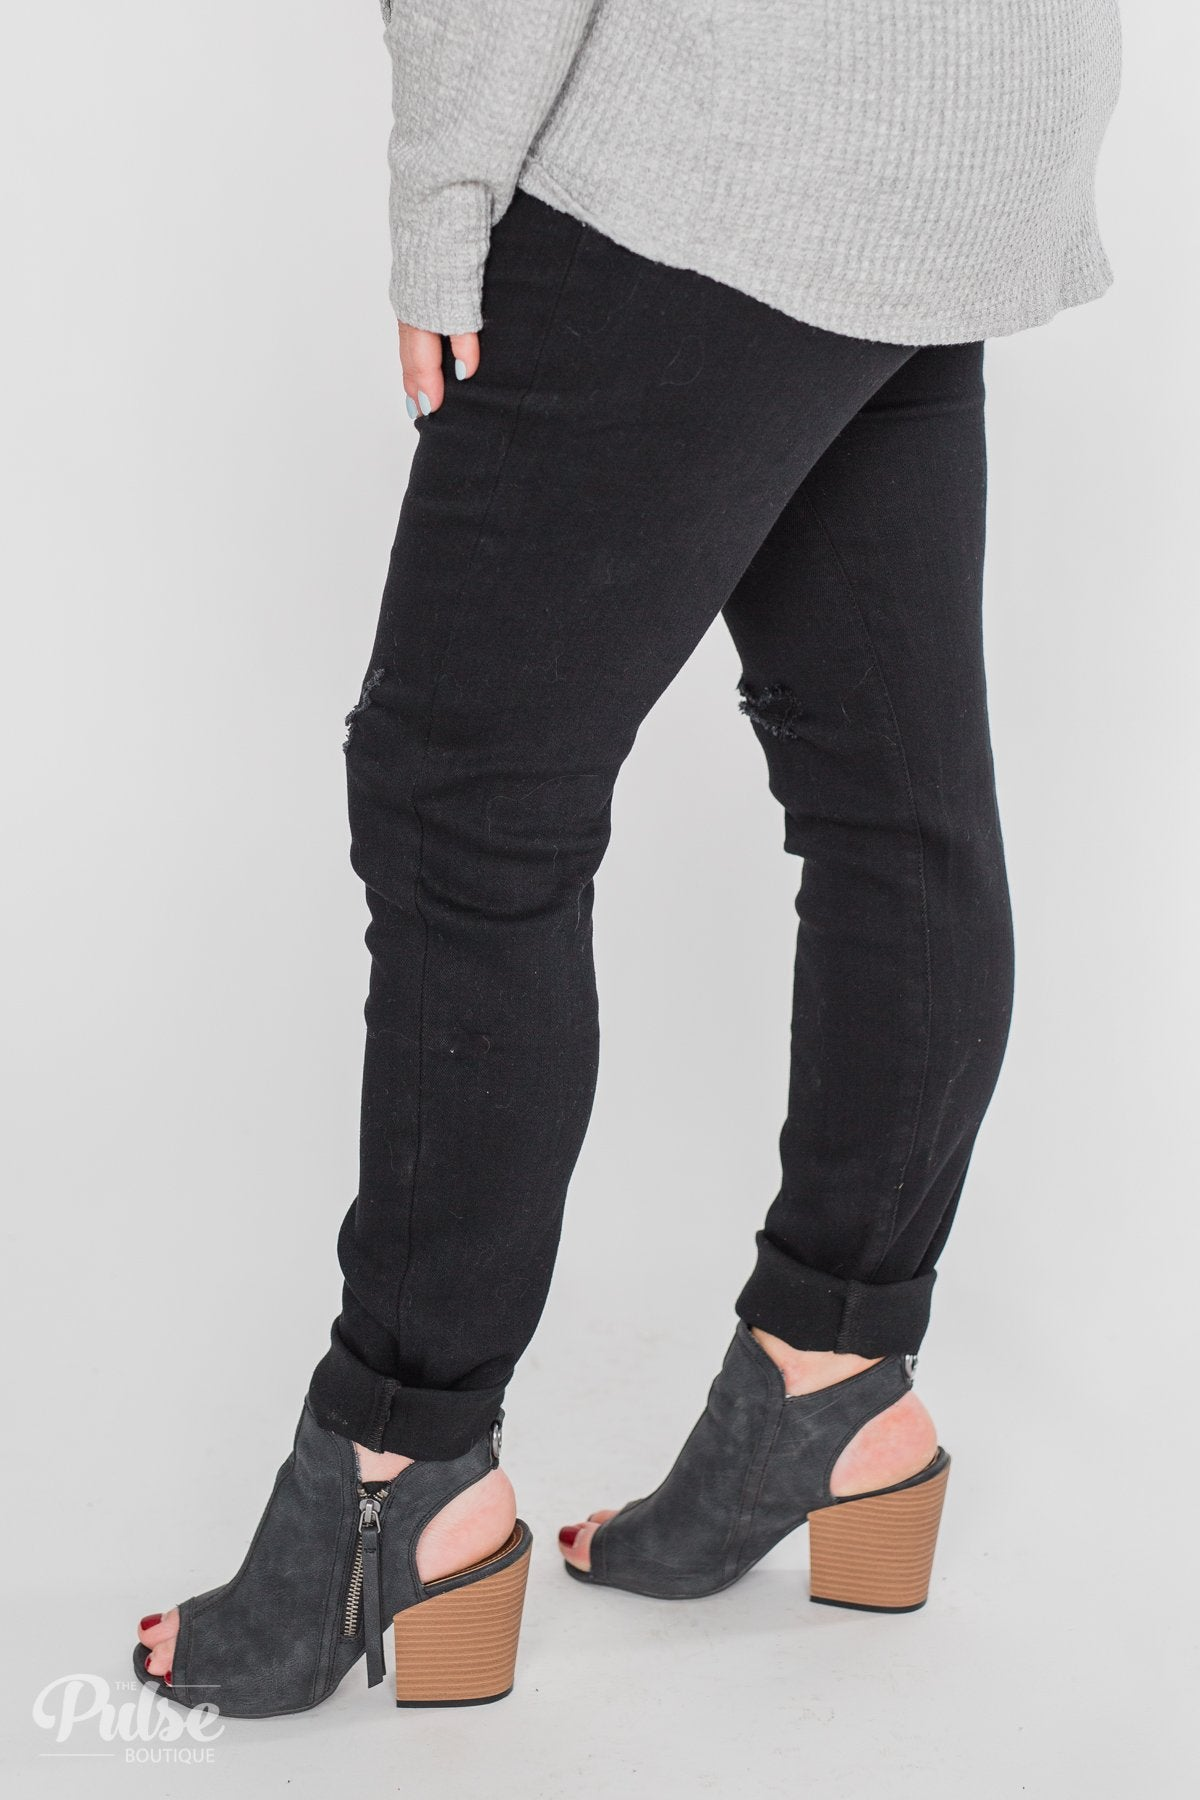 KanCan Rylee Jeans - Black Distressed